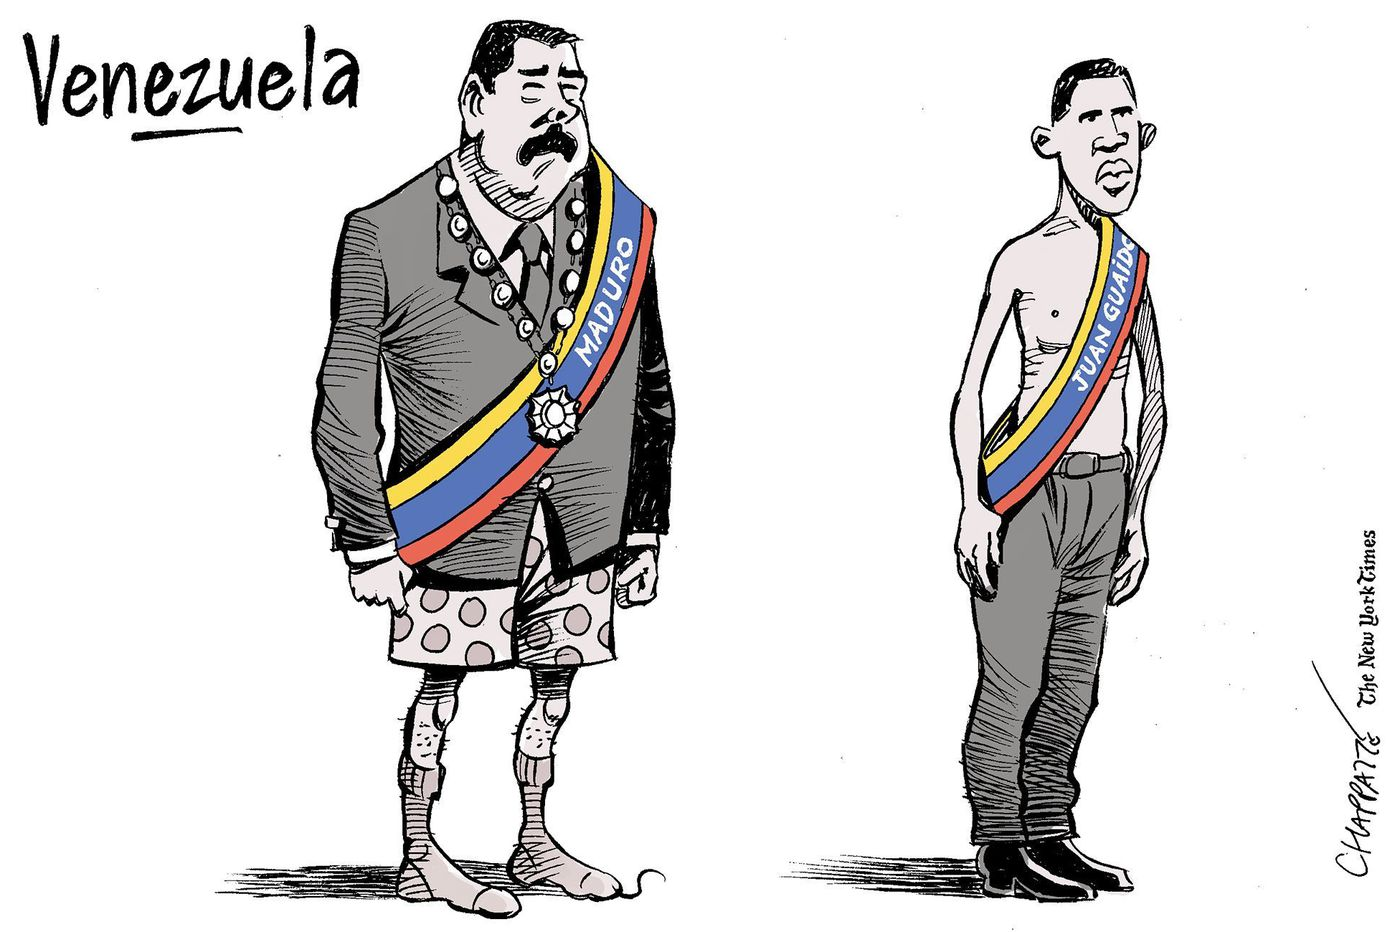 12 political cartoons that depict the political and humanitarian crisis in Venezuela | Opinion